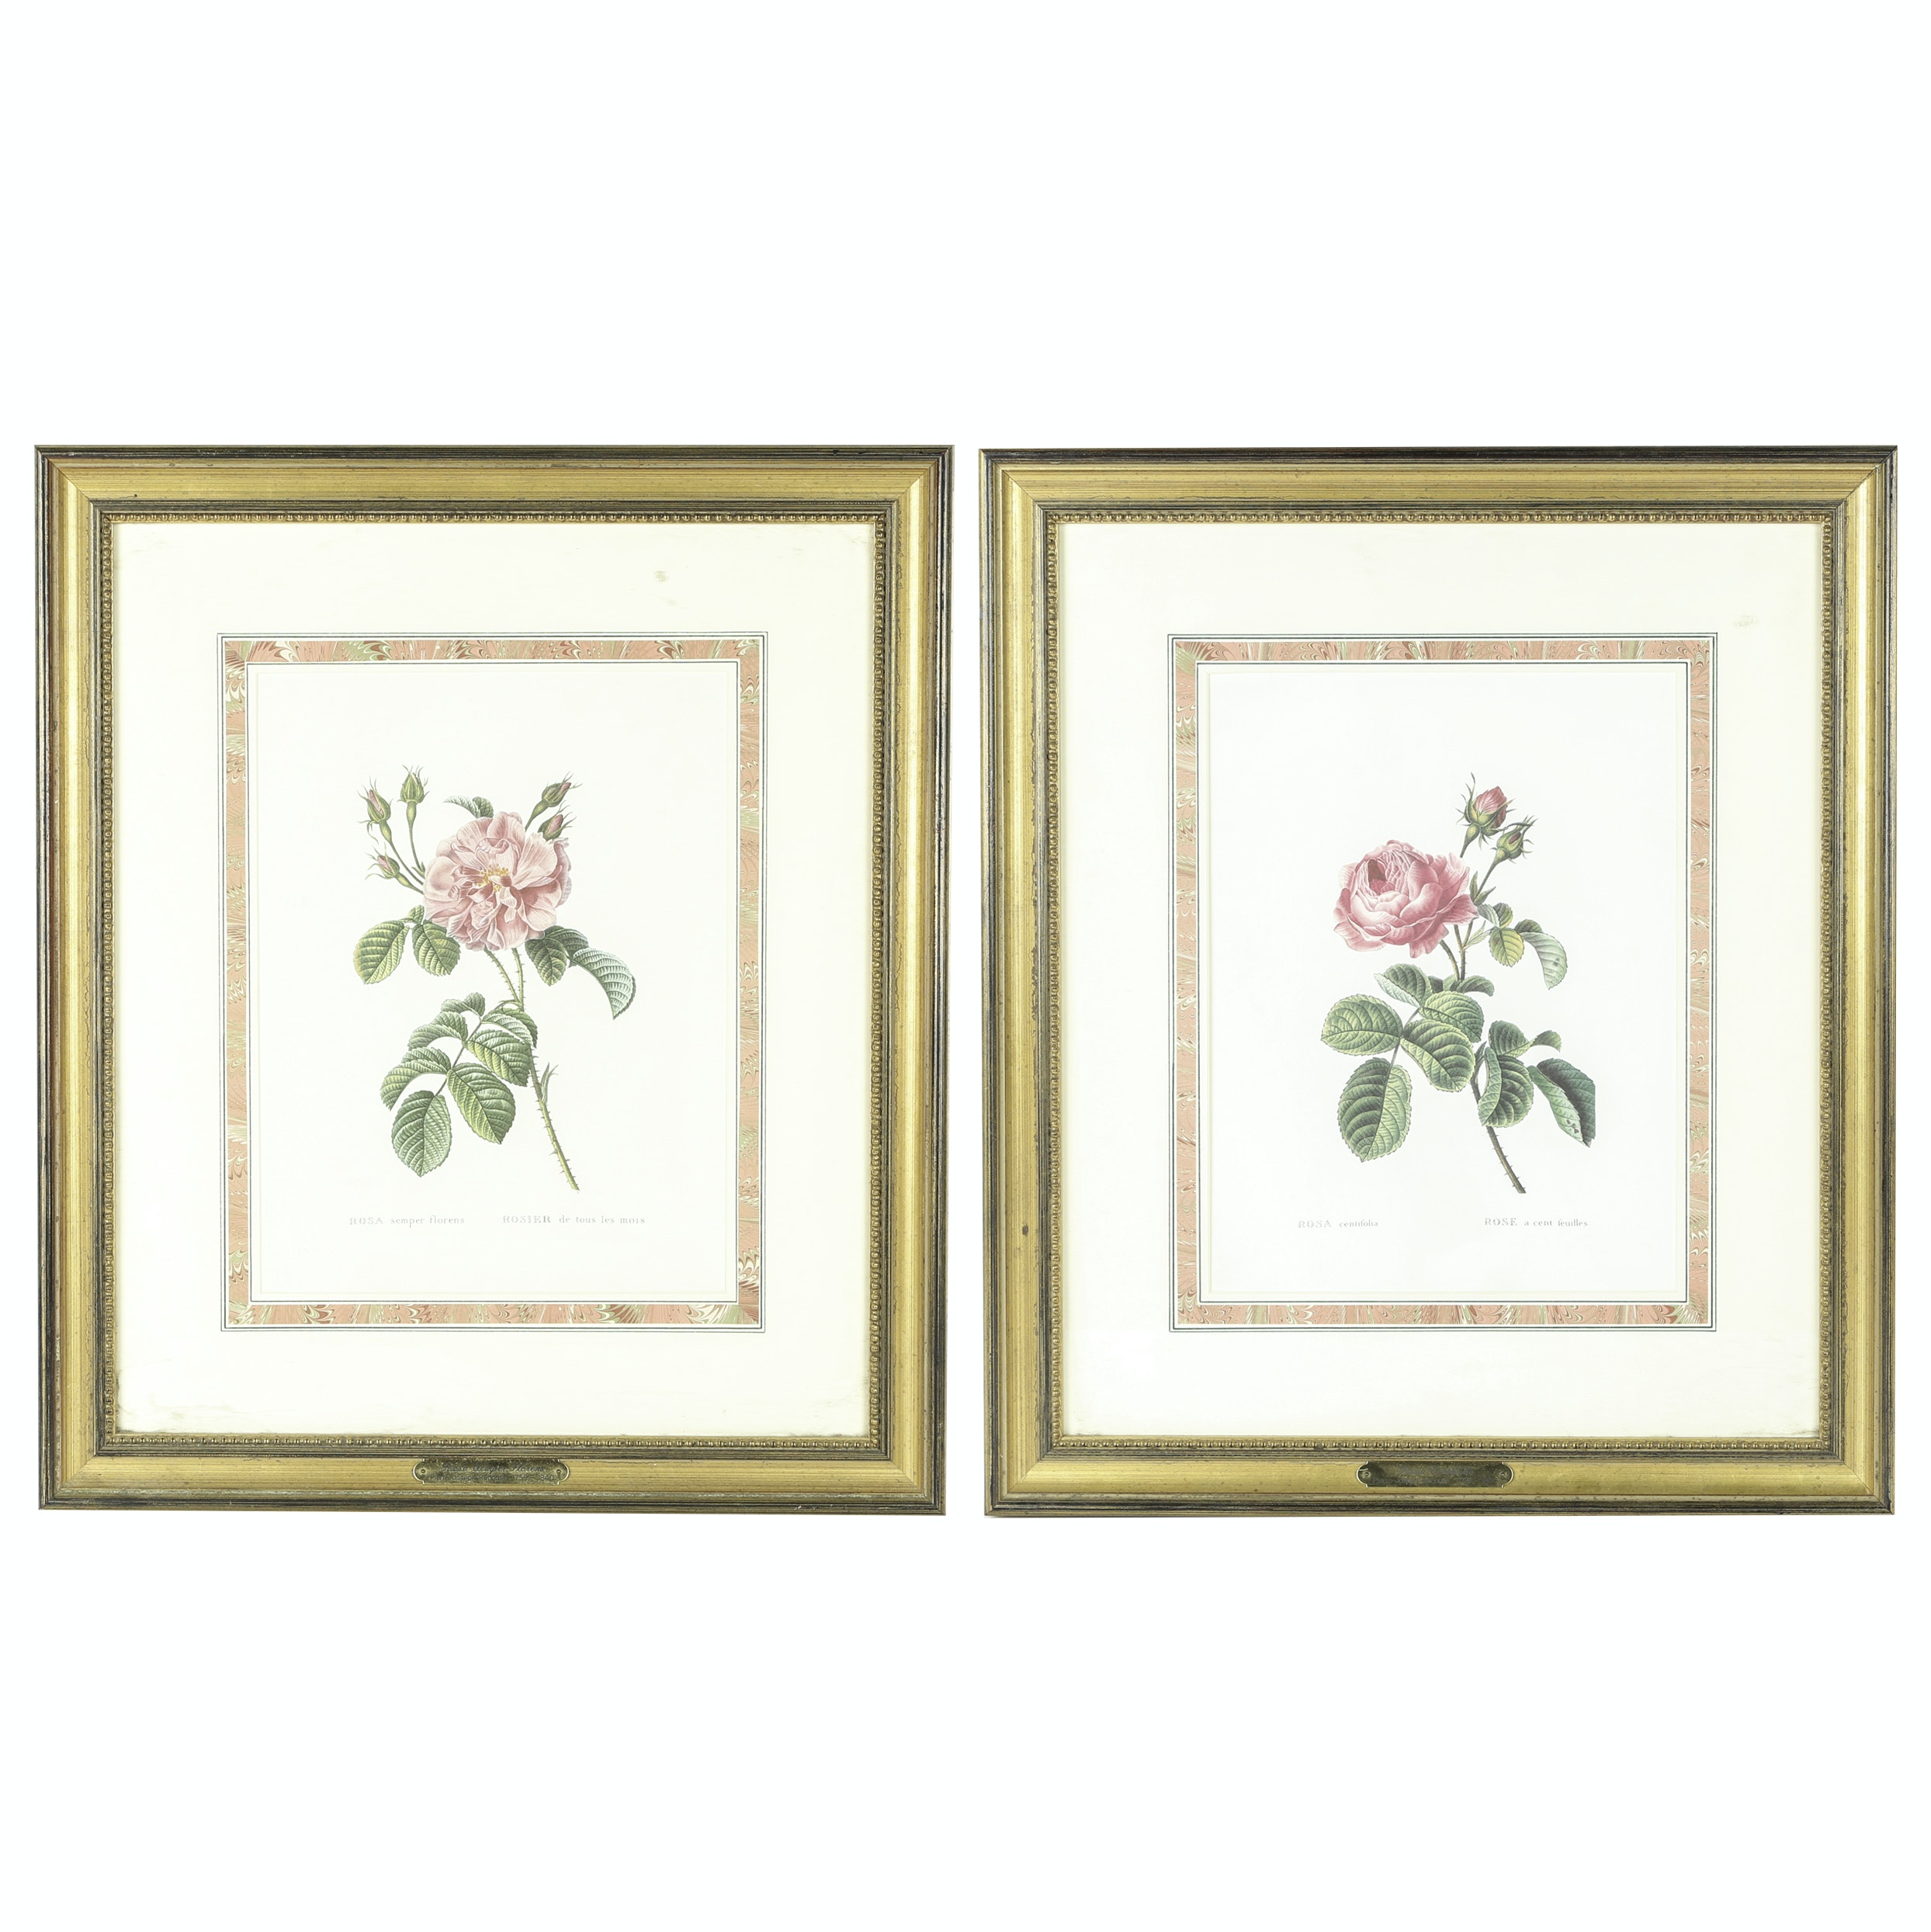 Botanical Reproduction Offset Lithographs After Pierre-Joseph Redoute